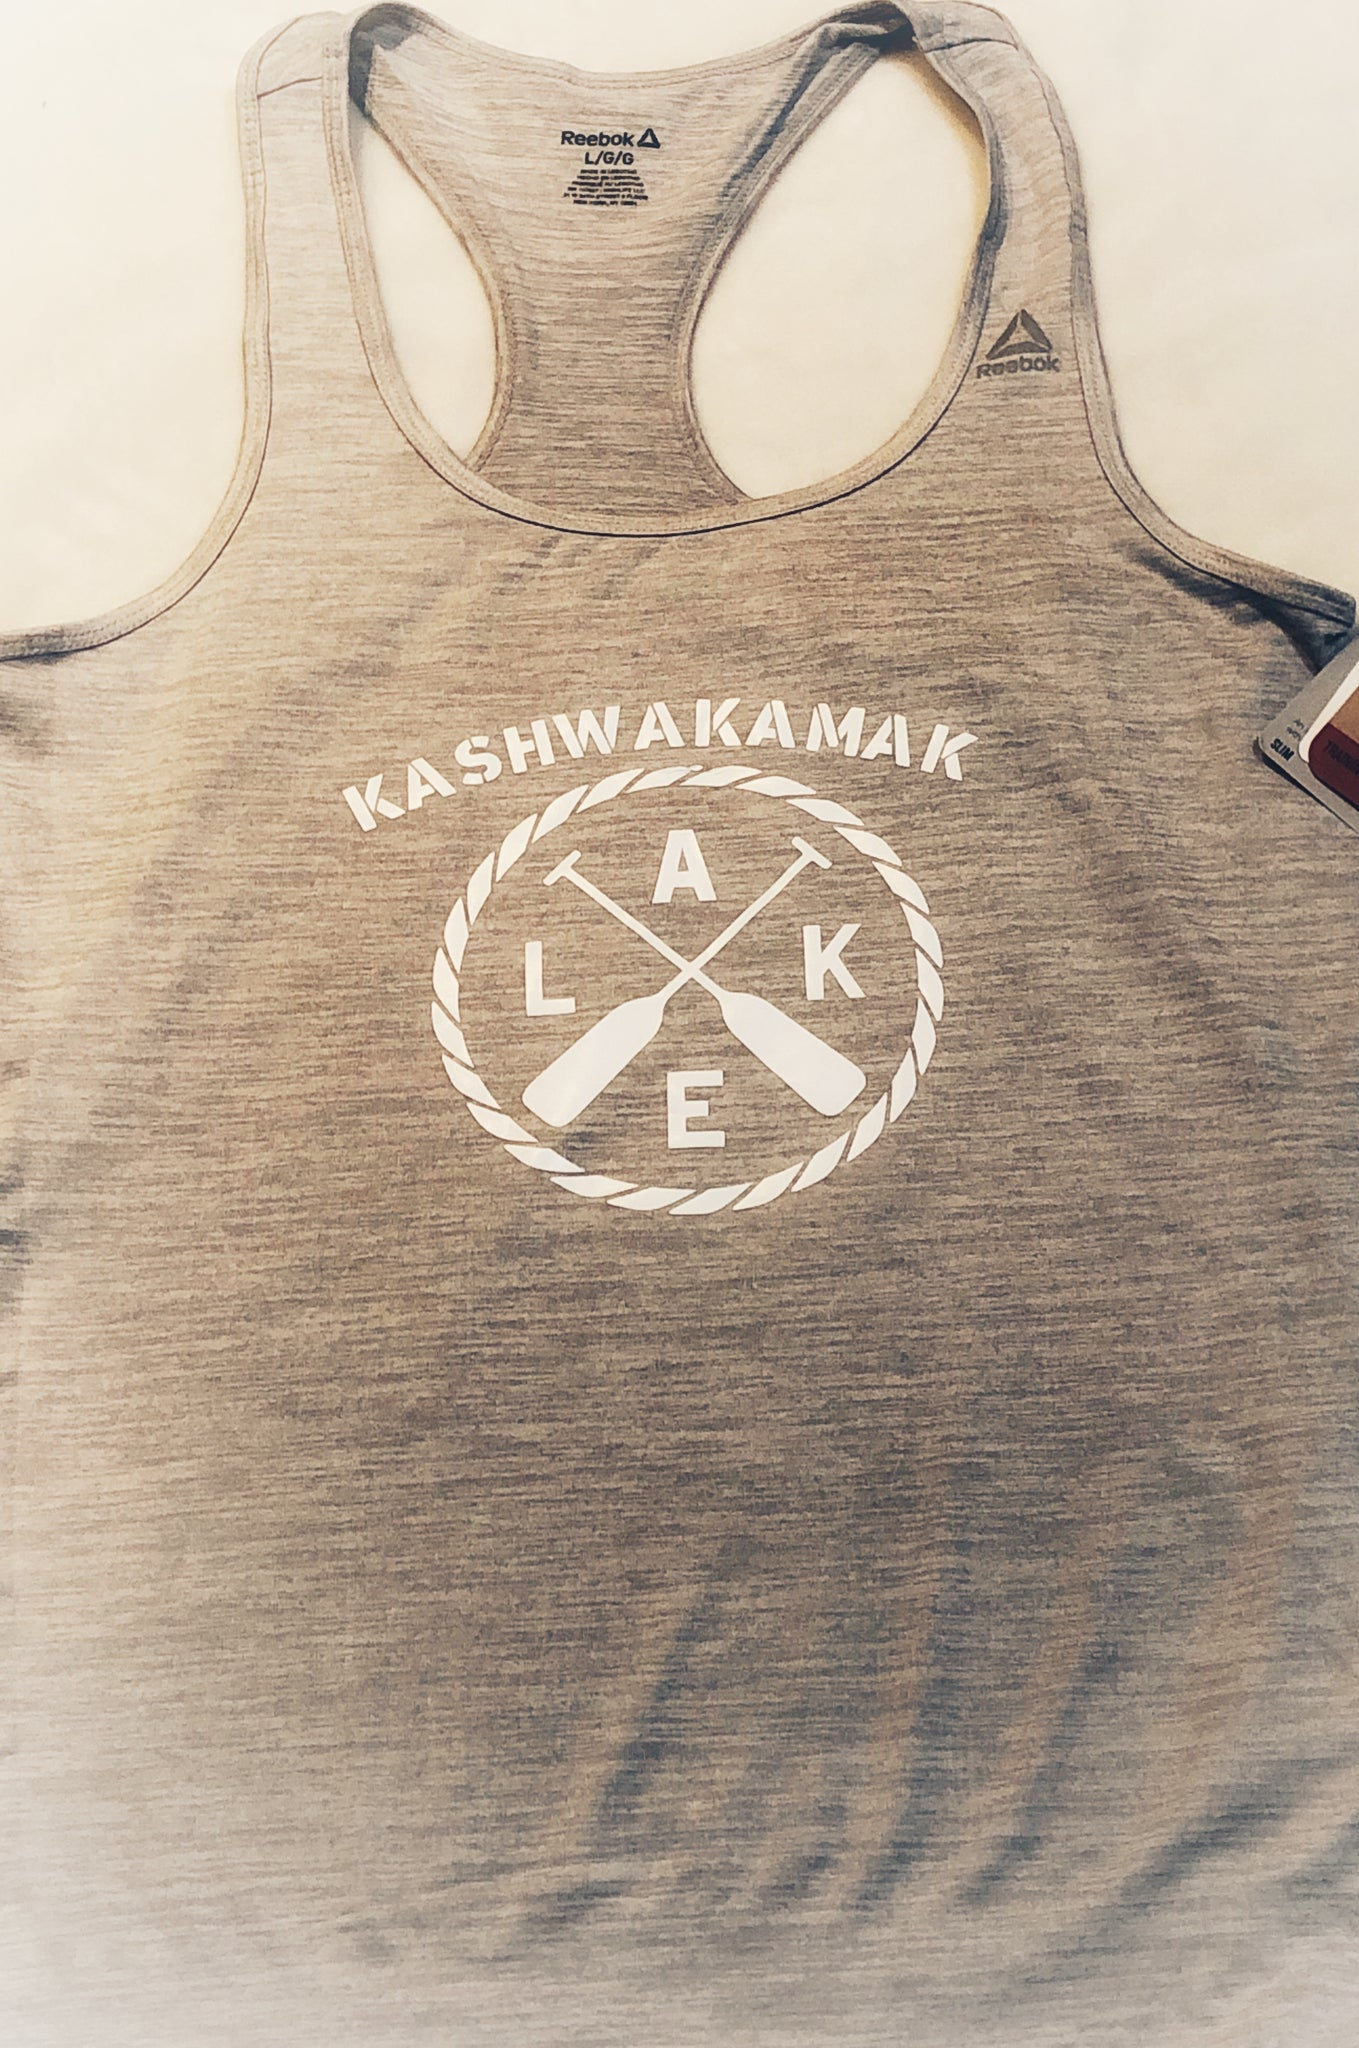 KASHWAKAMAK LAKE - Reebok tank top ( t-shirt)